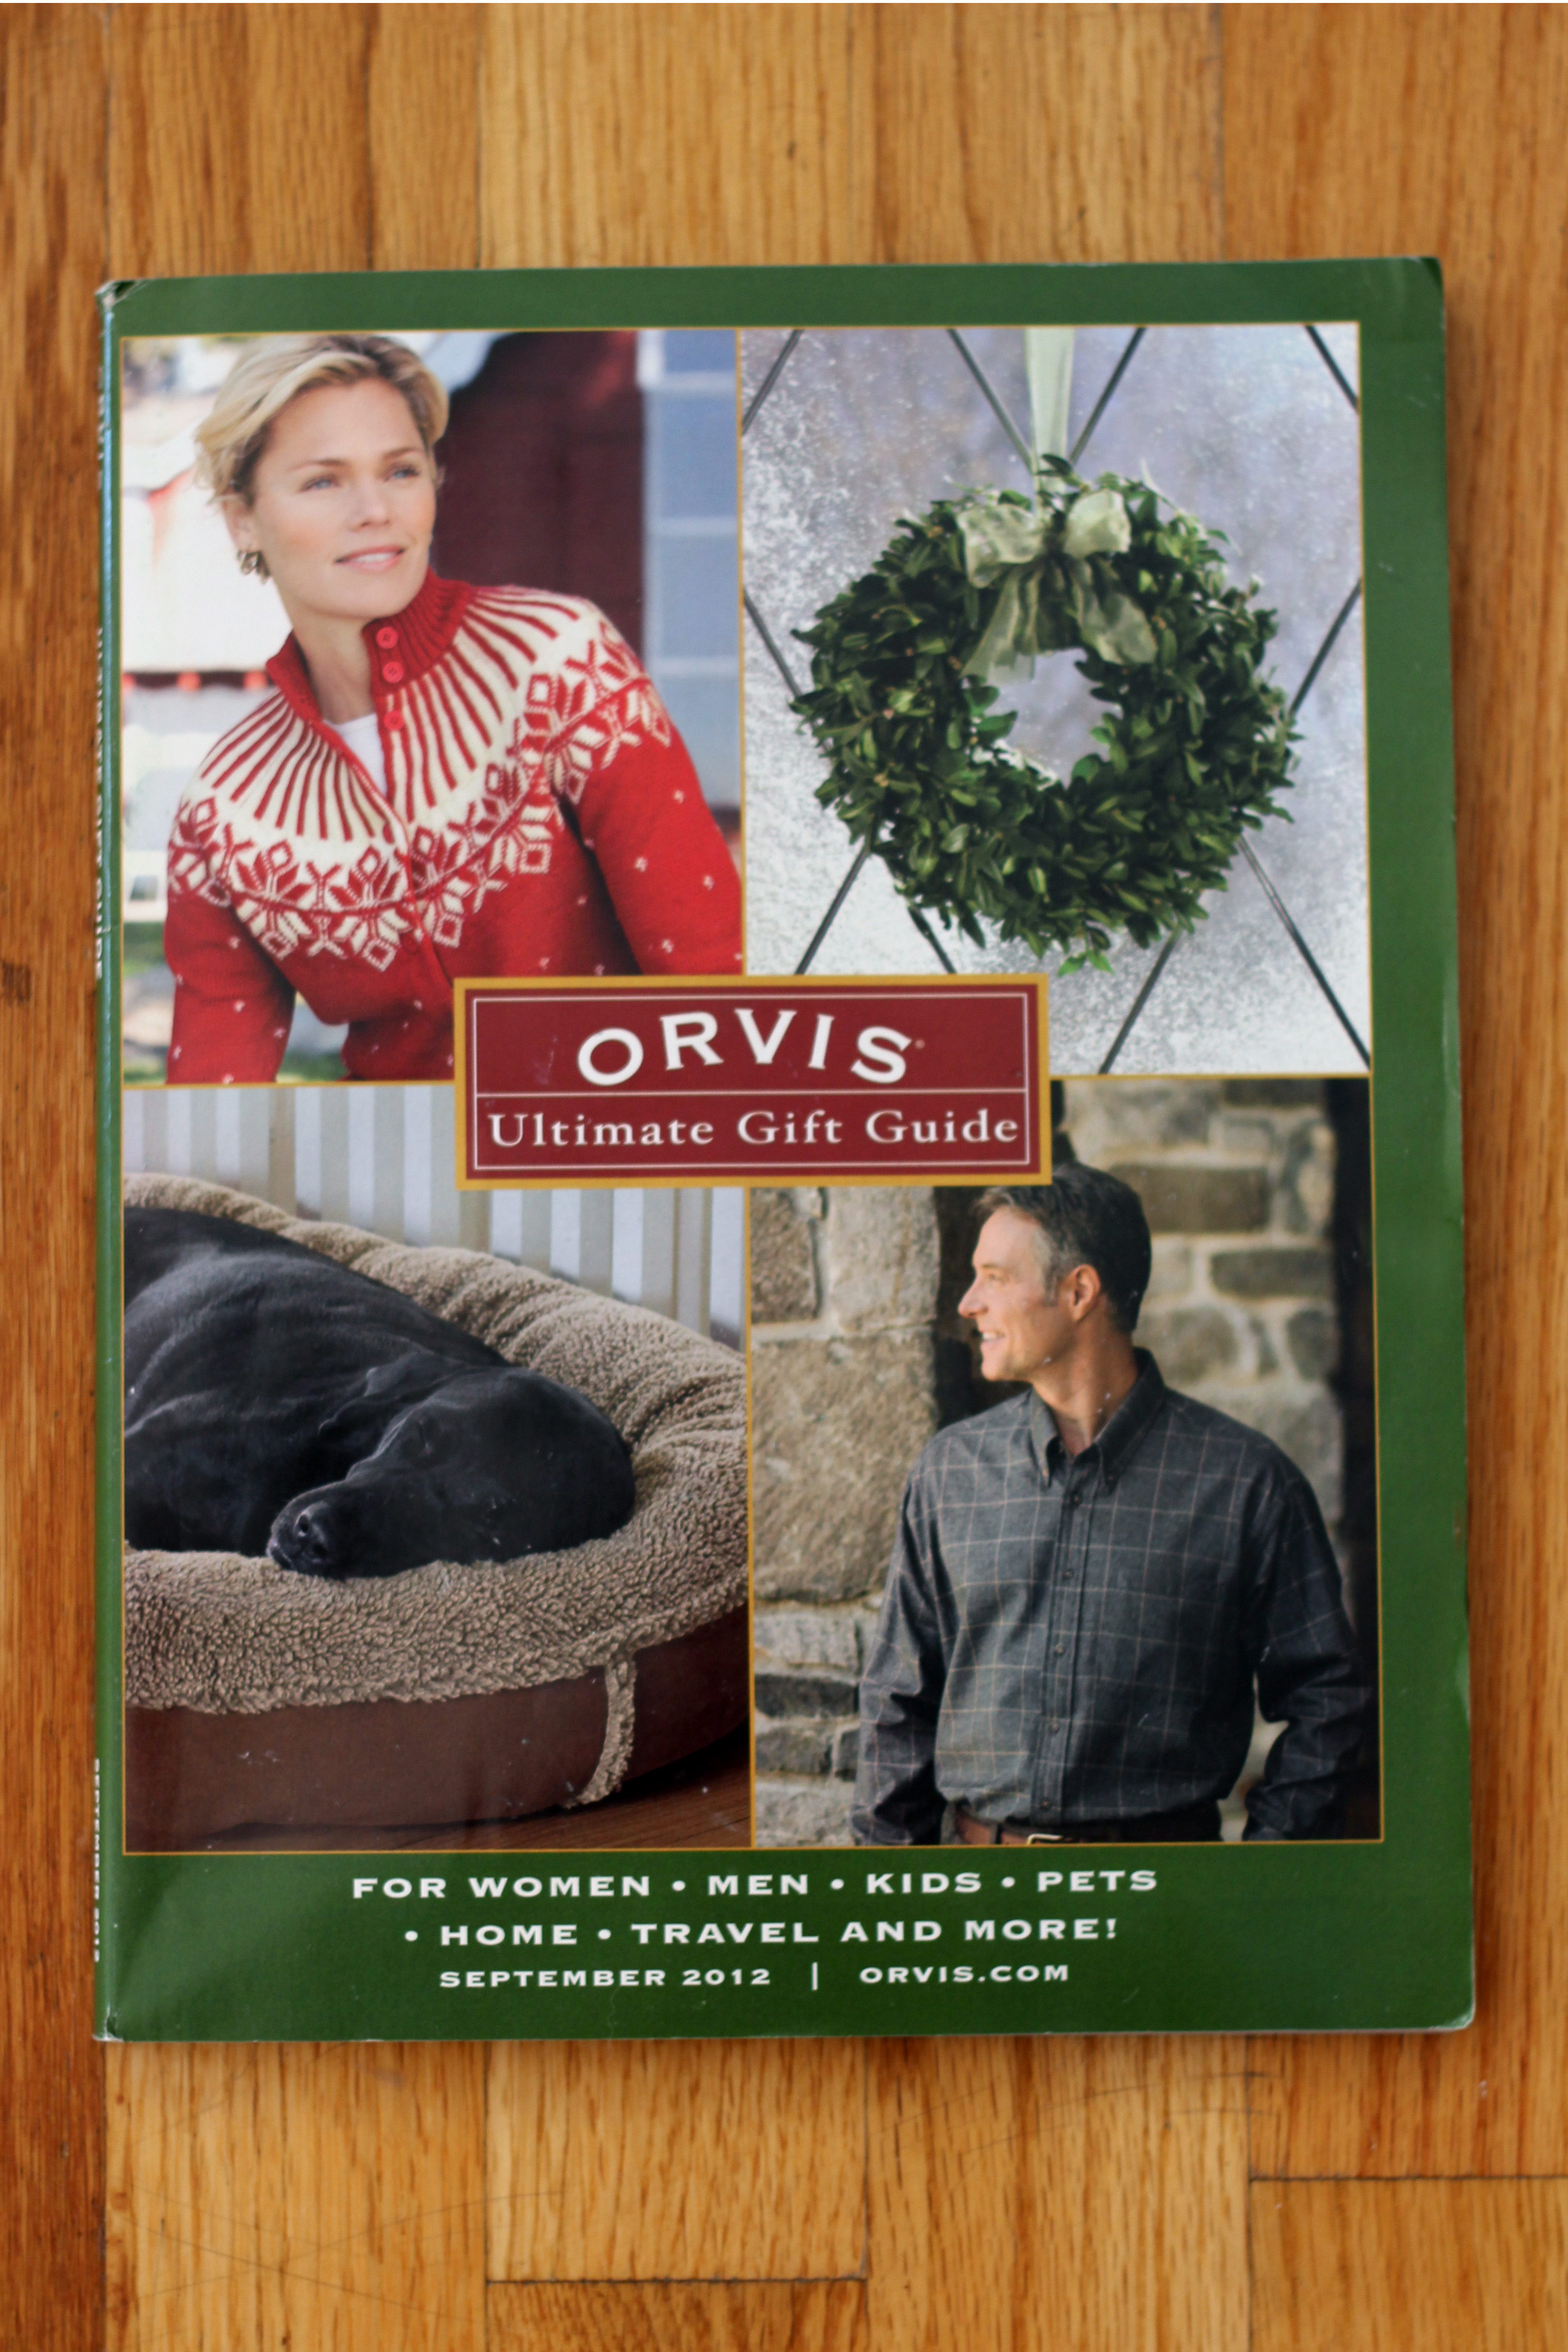 Orvis has been providing quality clothing and outdoor gear since Shop for quality men's and women's clothing, fly fishing gear, home furnishings, dog beds, bead spreads, slippers and more. Each item is rooted in authenticity of the great outdoors, and is backed with a no-questions-asked guarantee.